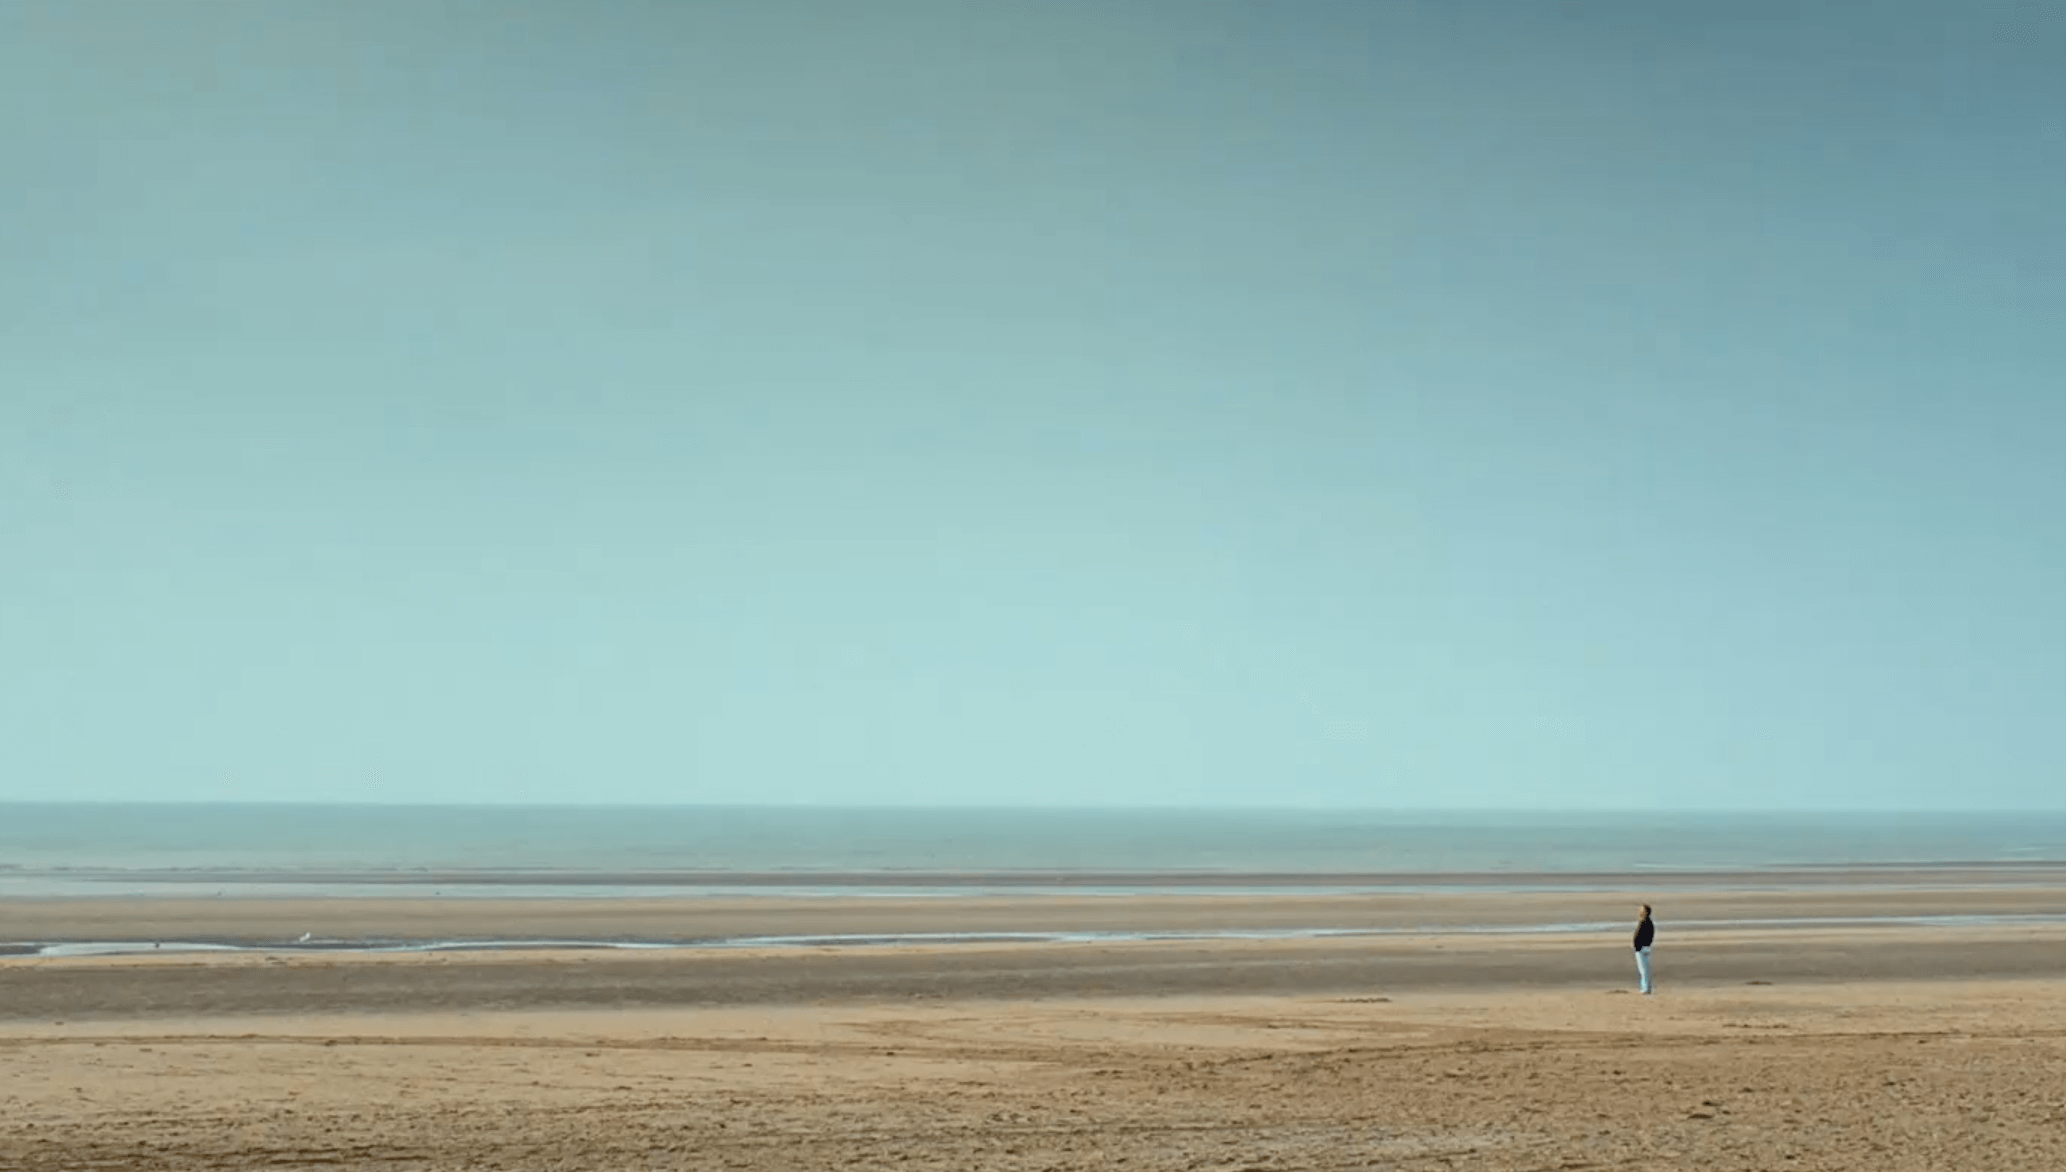 Criminal filmed at Camber Sands